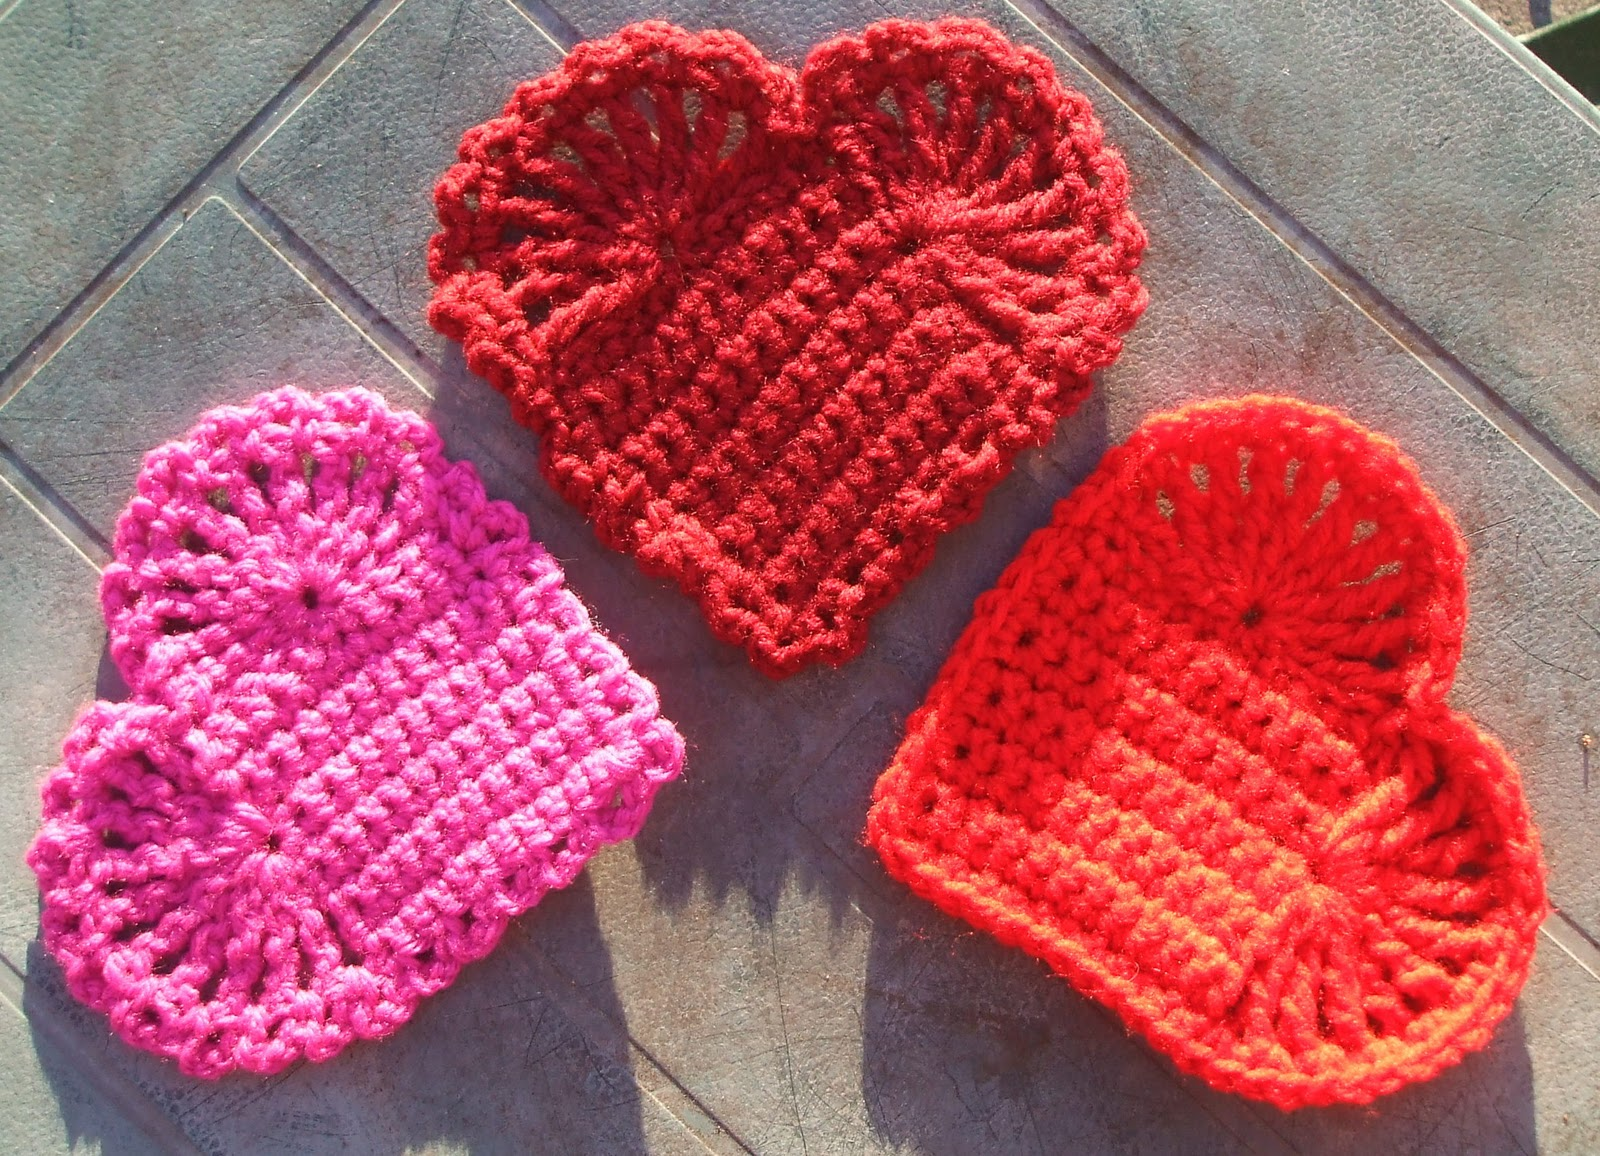 Crochet Stitches Red Heart : ... knitting welcome source http patternsda com heart crochet pattern